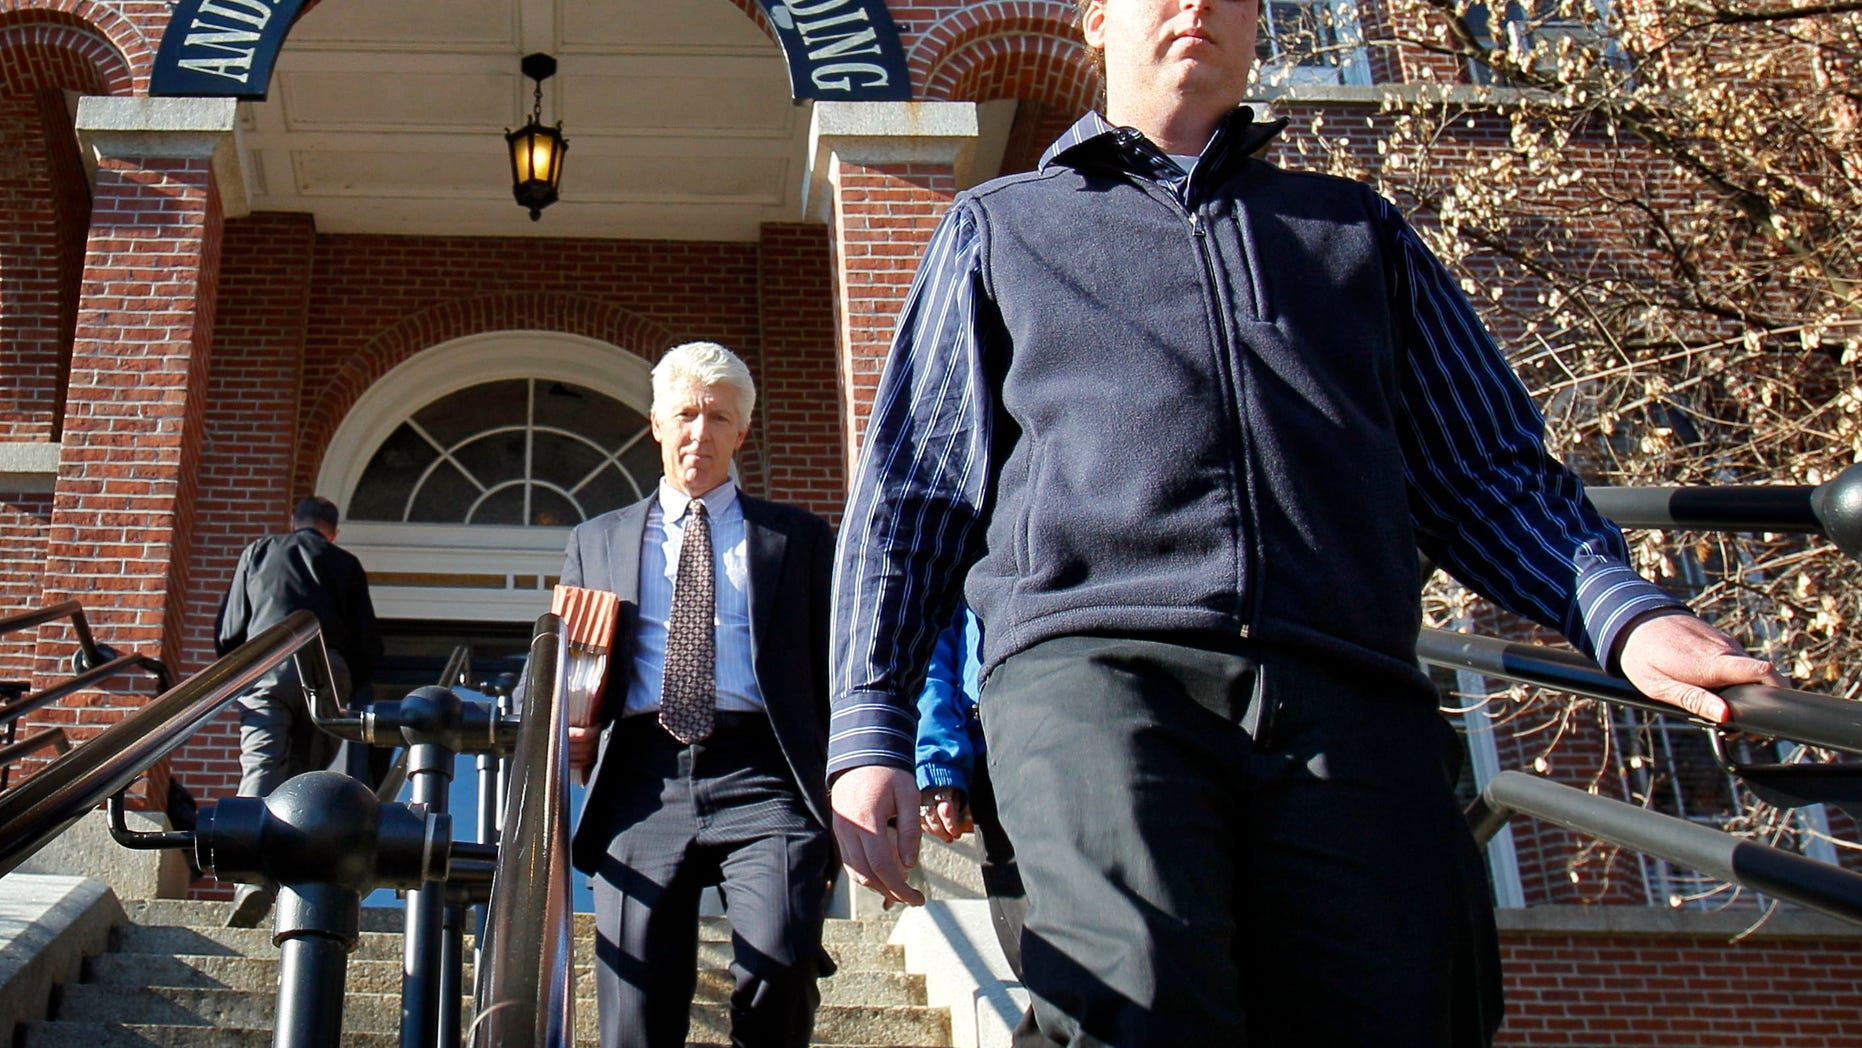 Dec. 1, 2011: Zach Tomaselli, 23, of Lewiston, Maine, right, and his lawyer, Justin Leary, leave Androscoggin Superior Court in Auburn, Maine. Tomaselli, who accused former Syracuse assistant basketball coach Bernie Fine of molesting him is seeking to suppress evidence in his own molestation case in Maine.